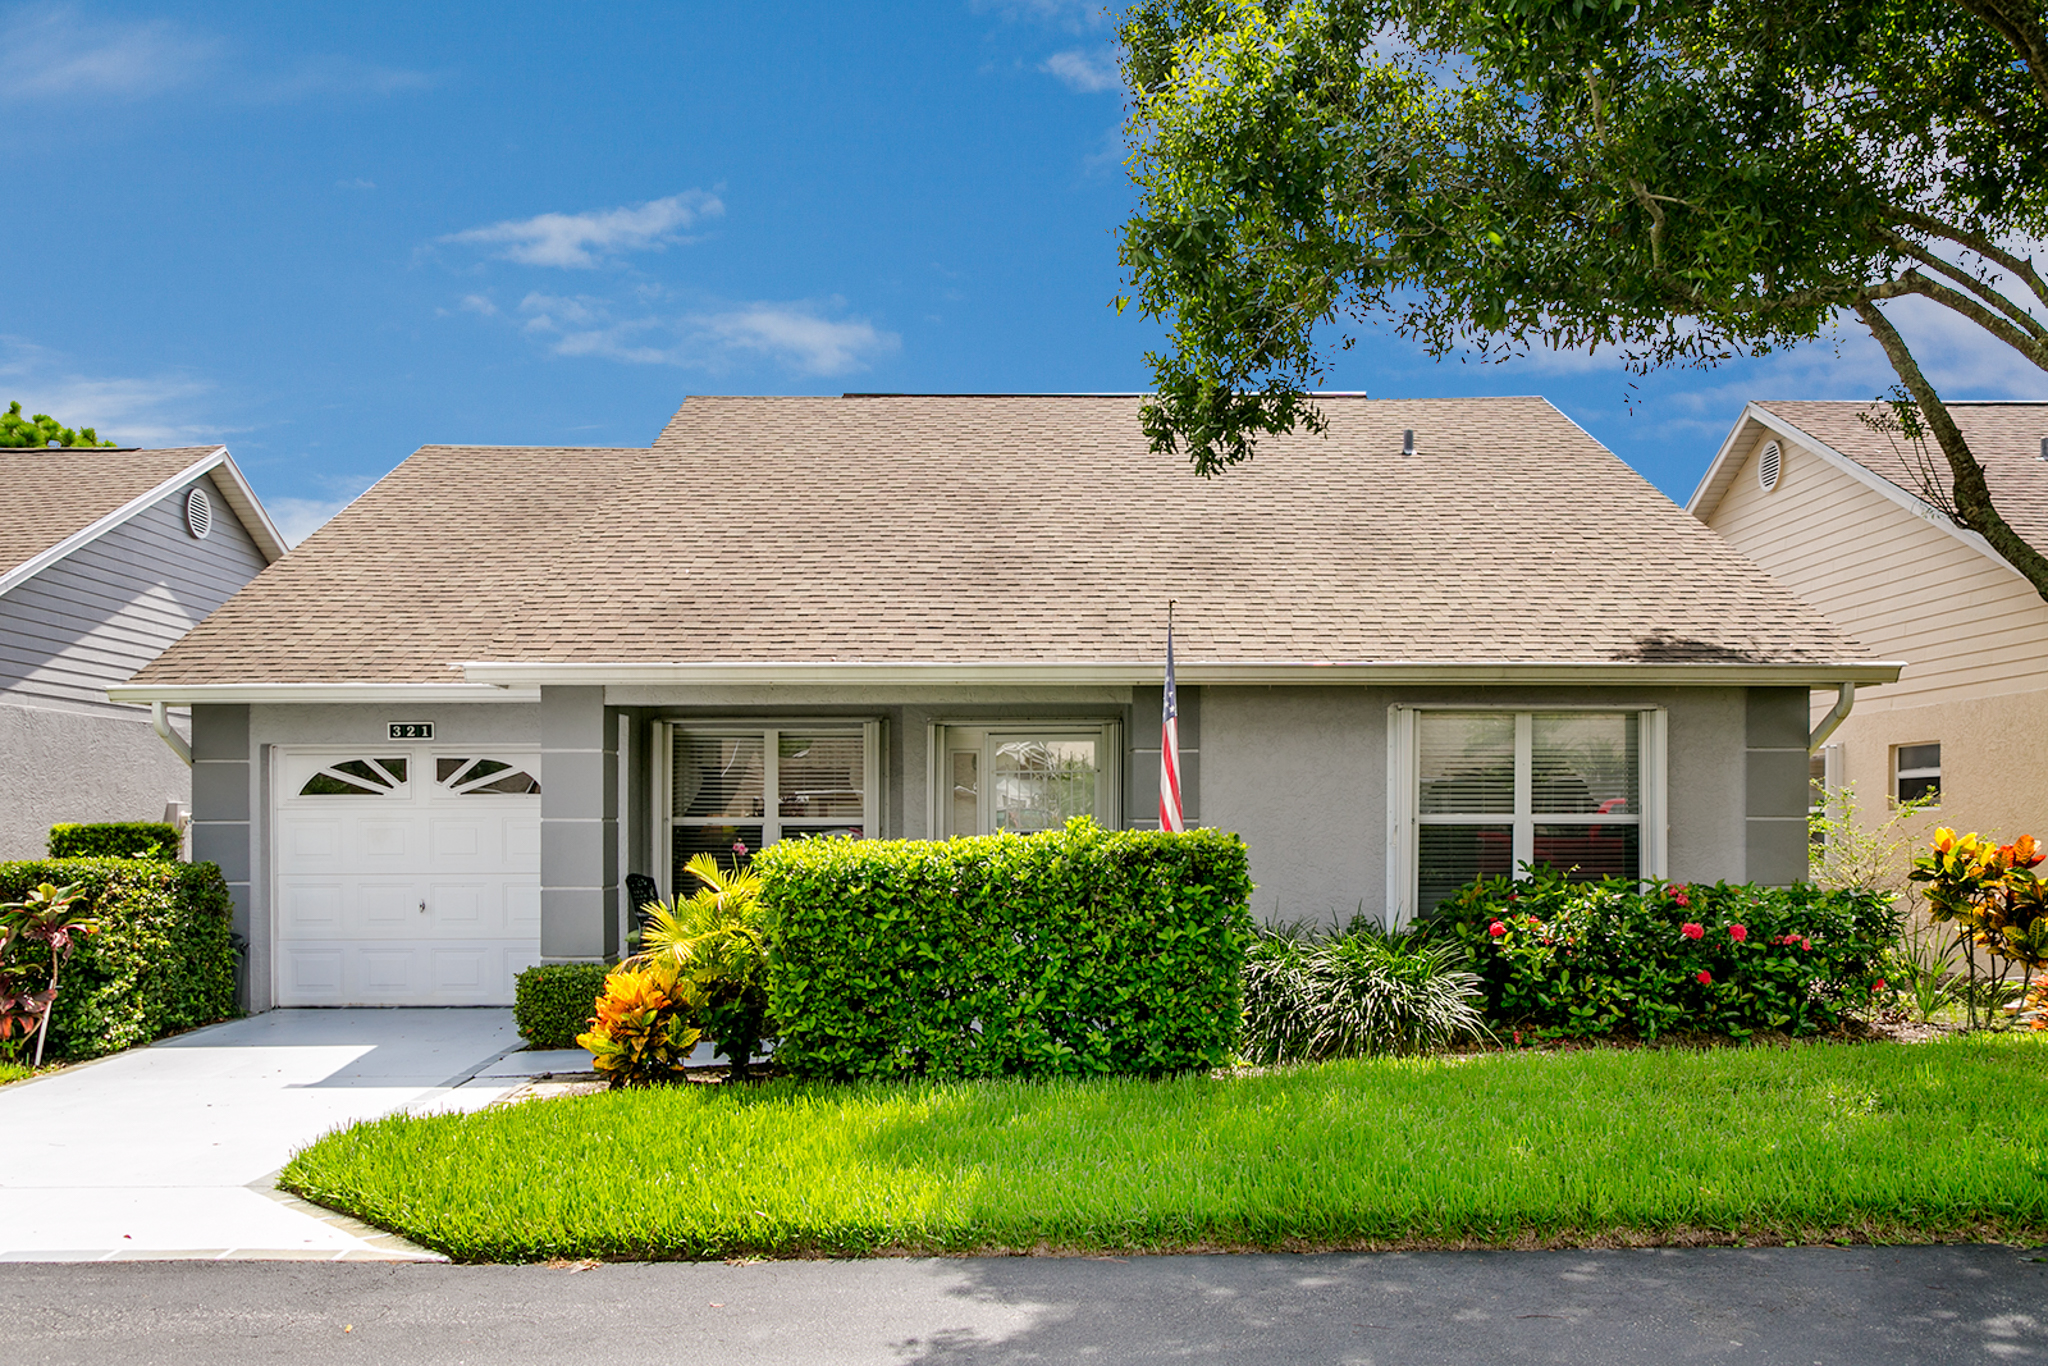 321 NW Tuscany Court Just Listed In St Lucie West, Port St Lucie Florida 34986